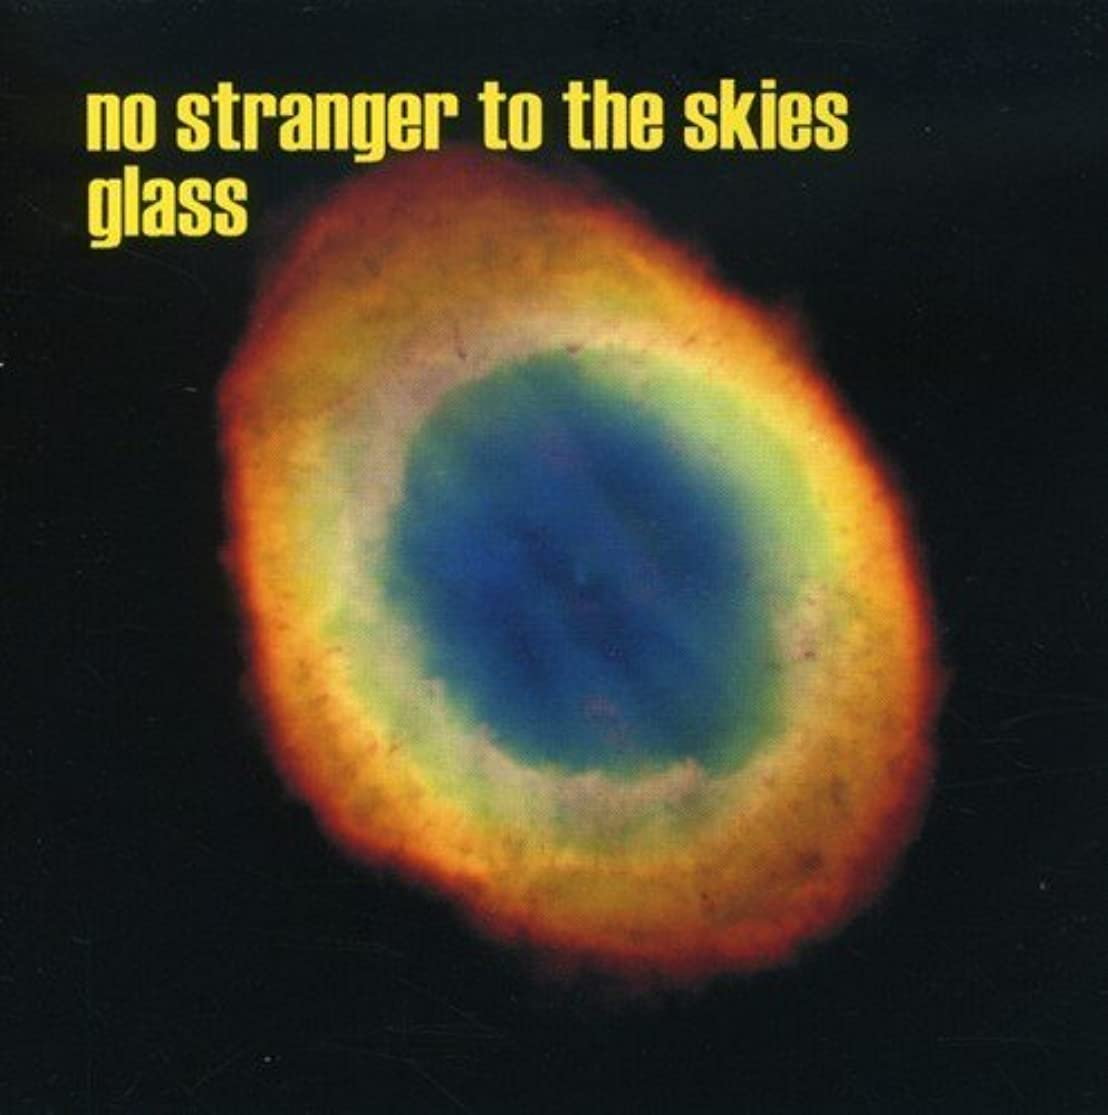 No Stranger to the Skies by Glass mqstkulx9